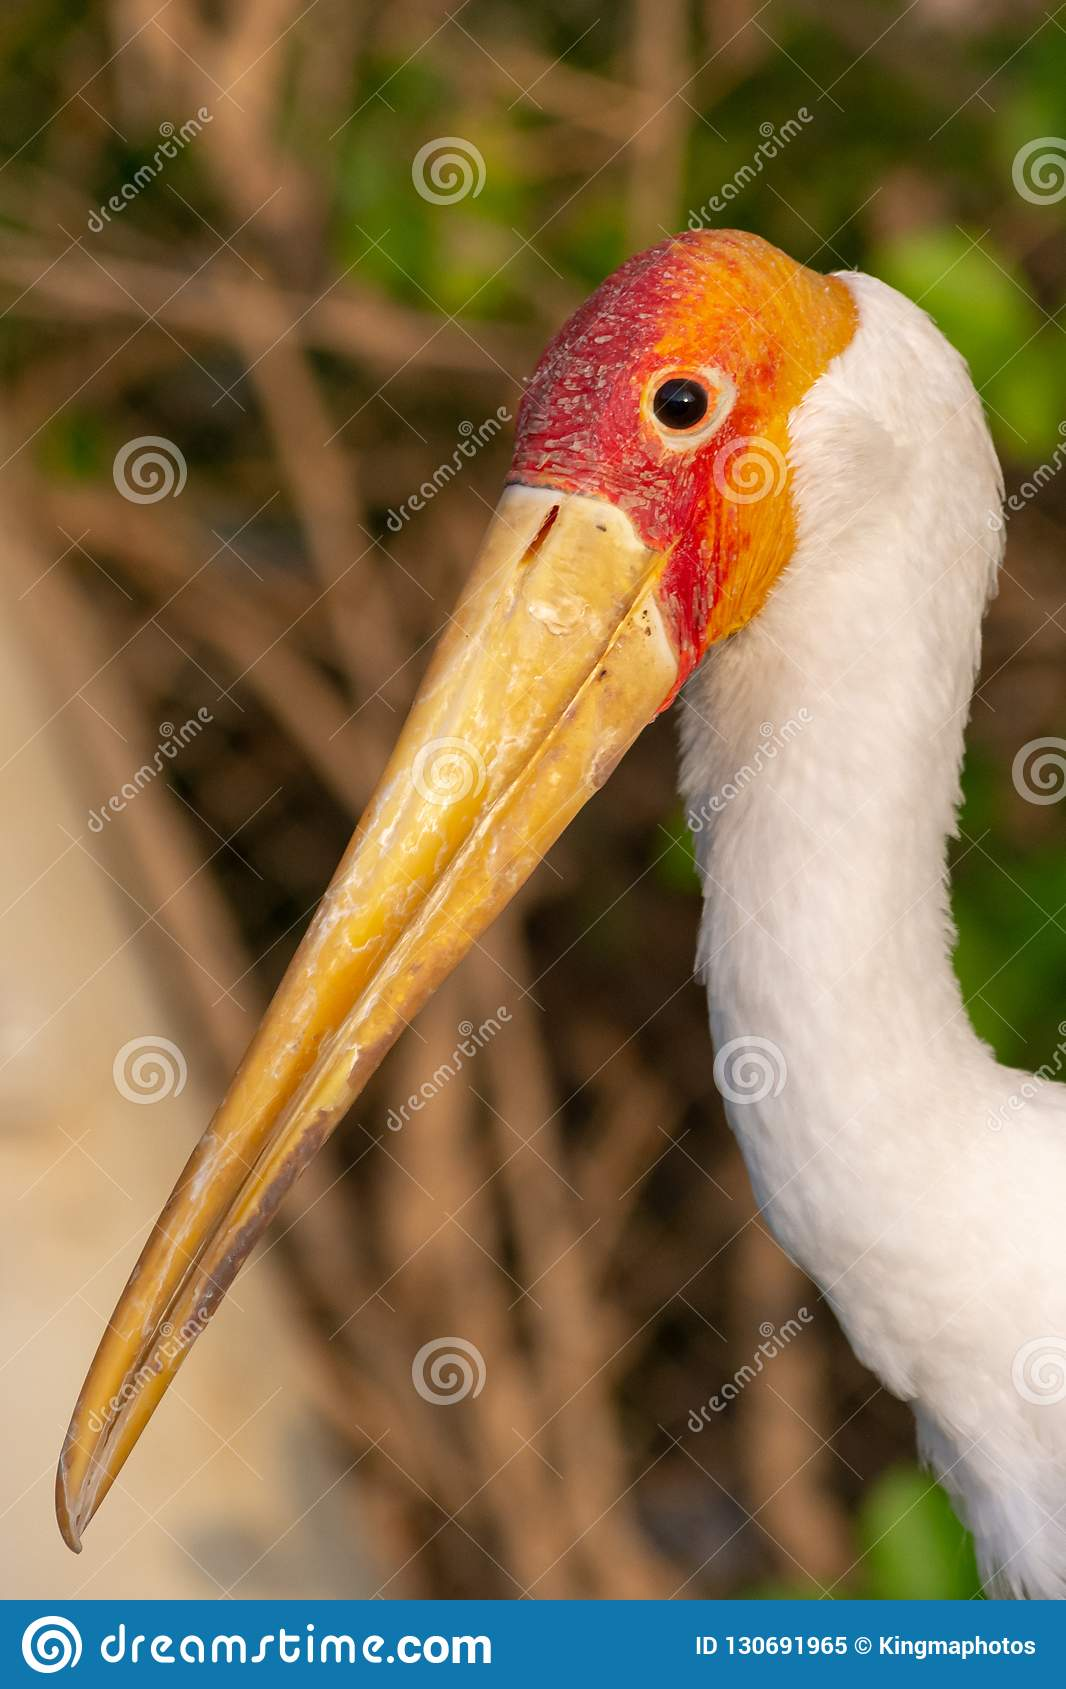 A close up of a Yellow-Billed Stork shows off its beak at sunset